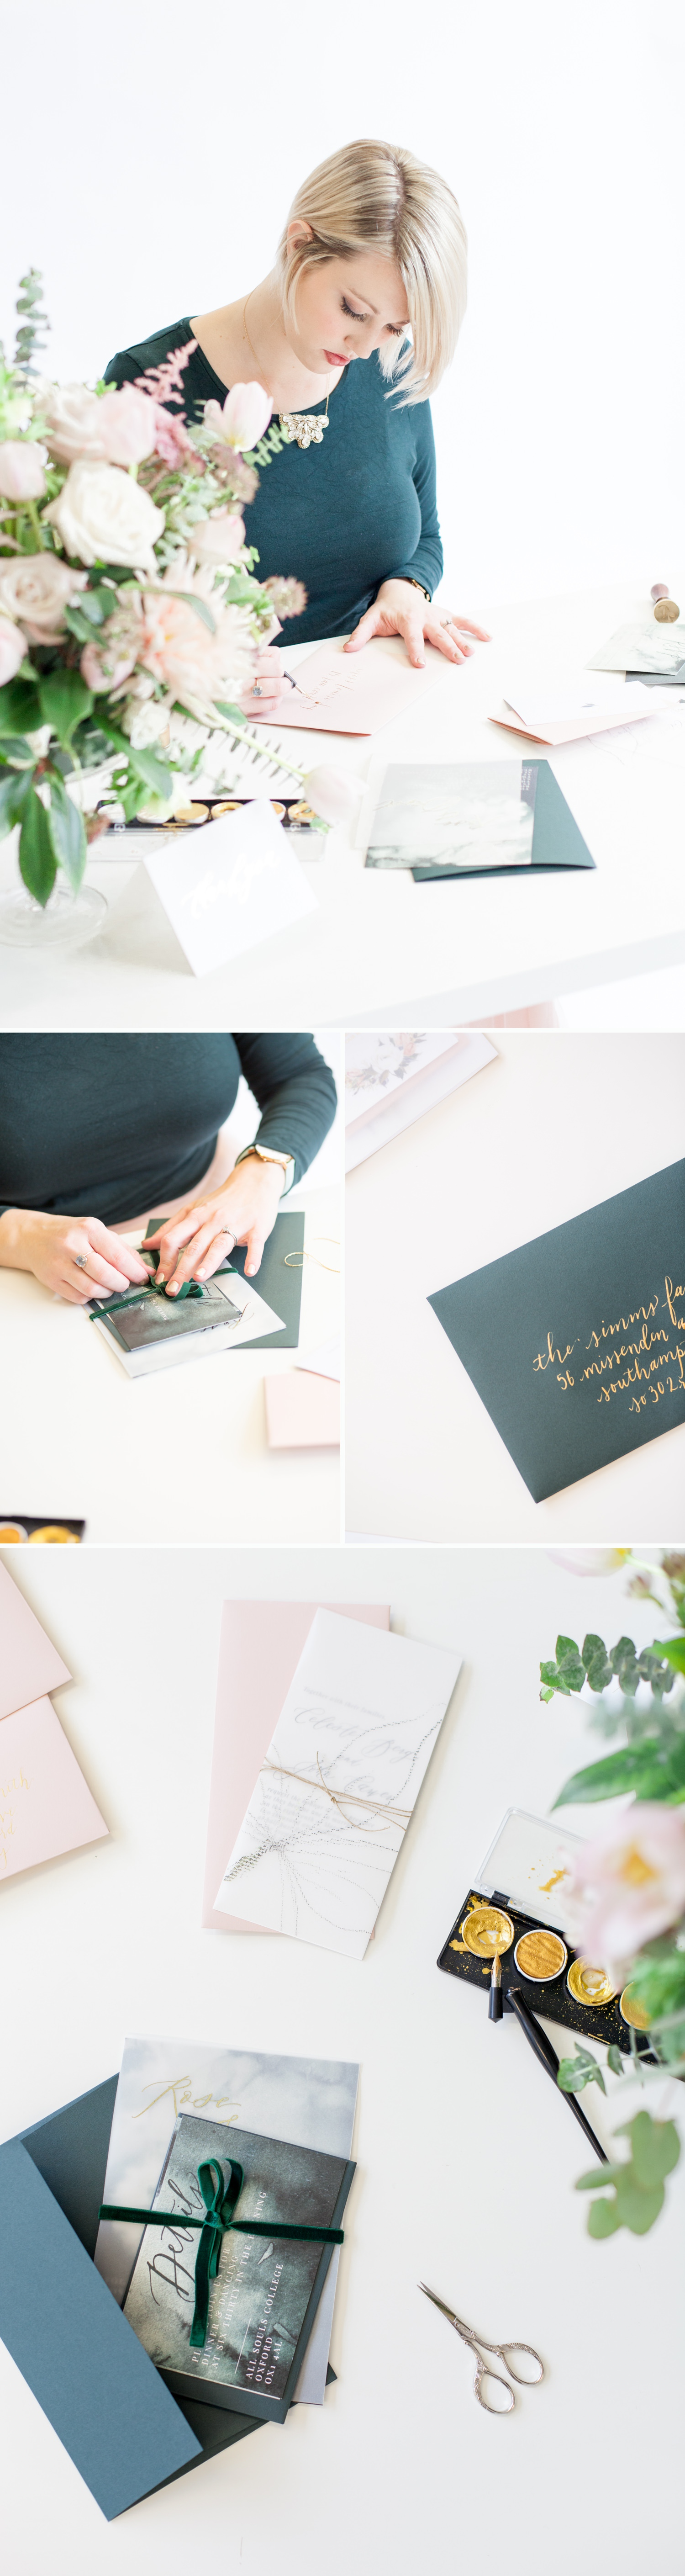 Personal Branding, a calligrapher at work